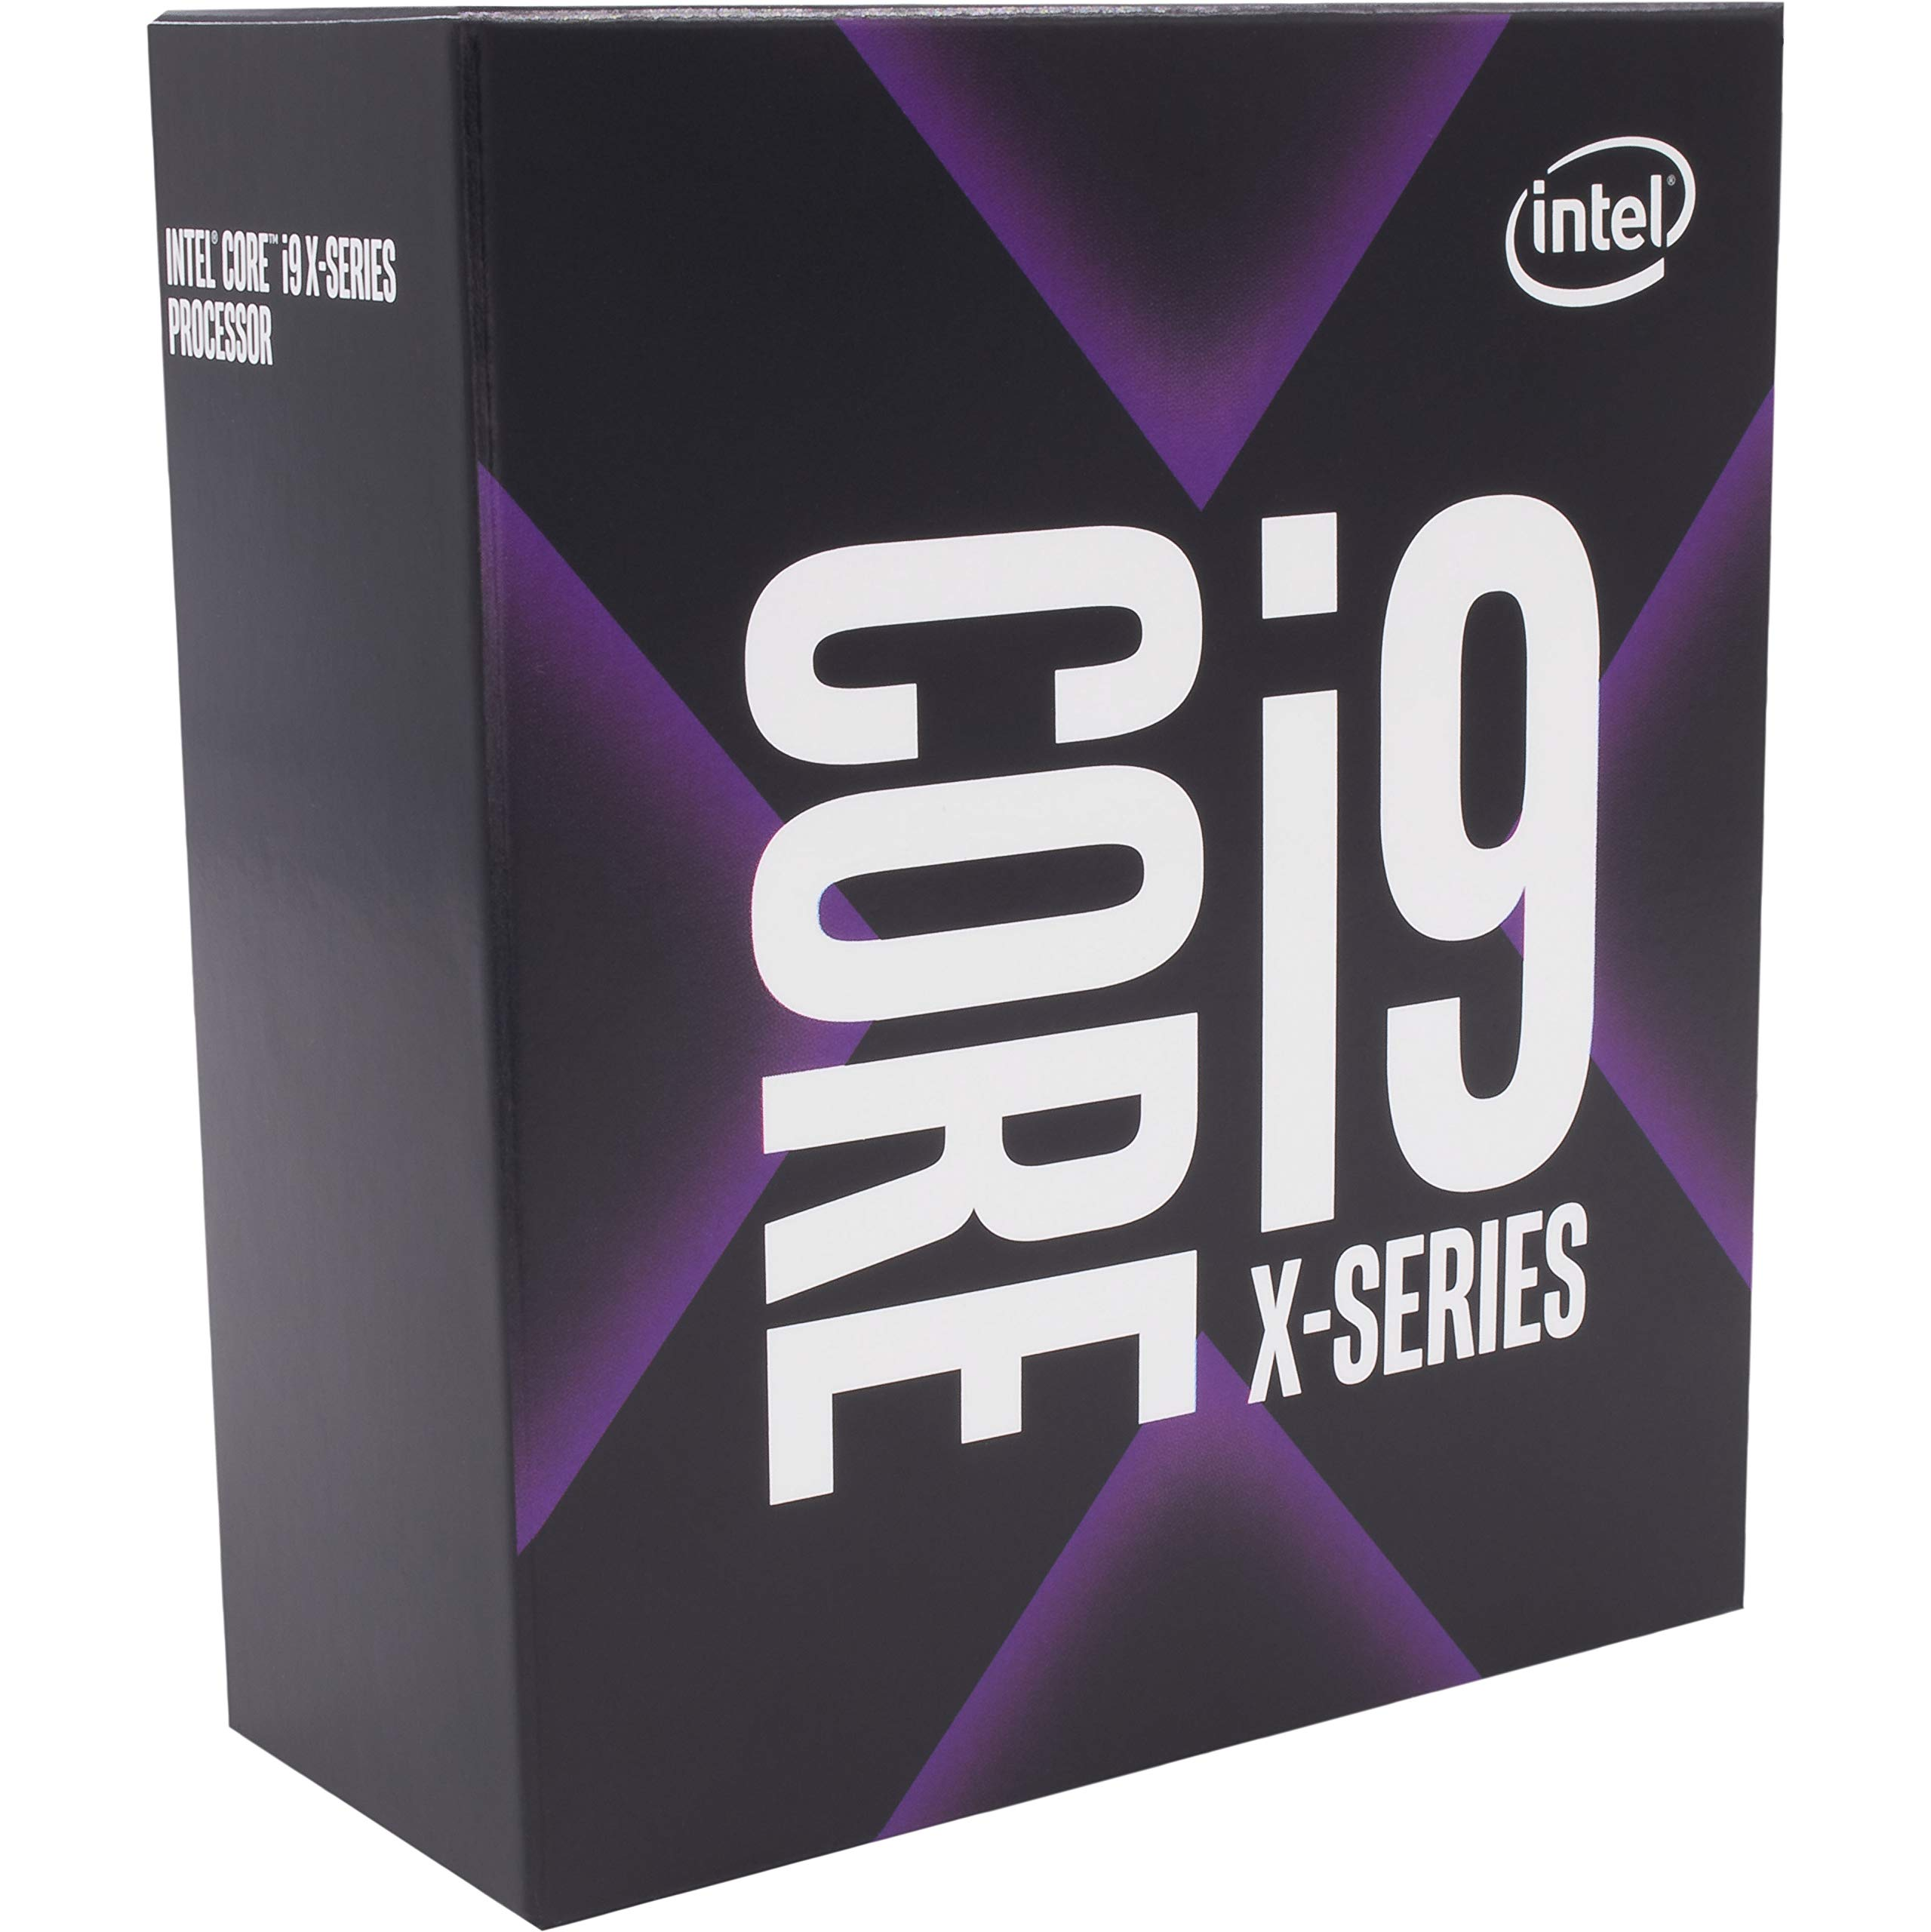 Intel Core i9-9900X X-Series 10 Cores up to 4.4GHz Turbo Unl